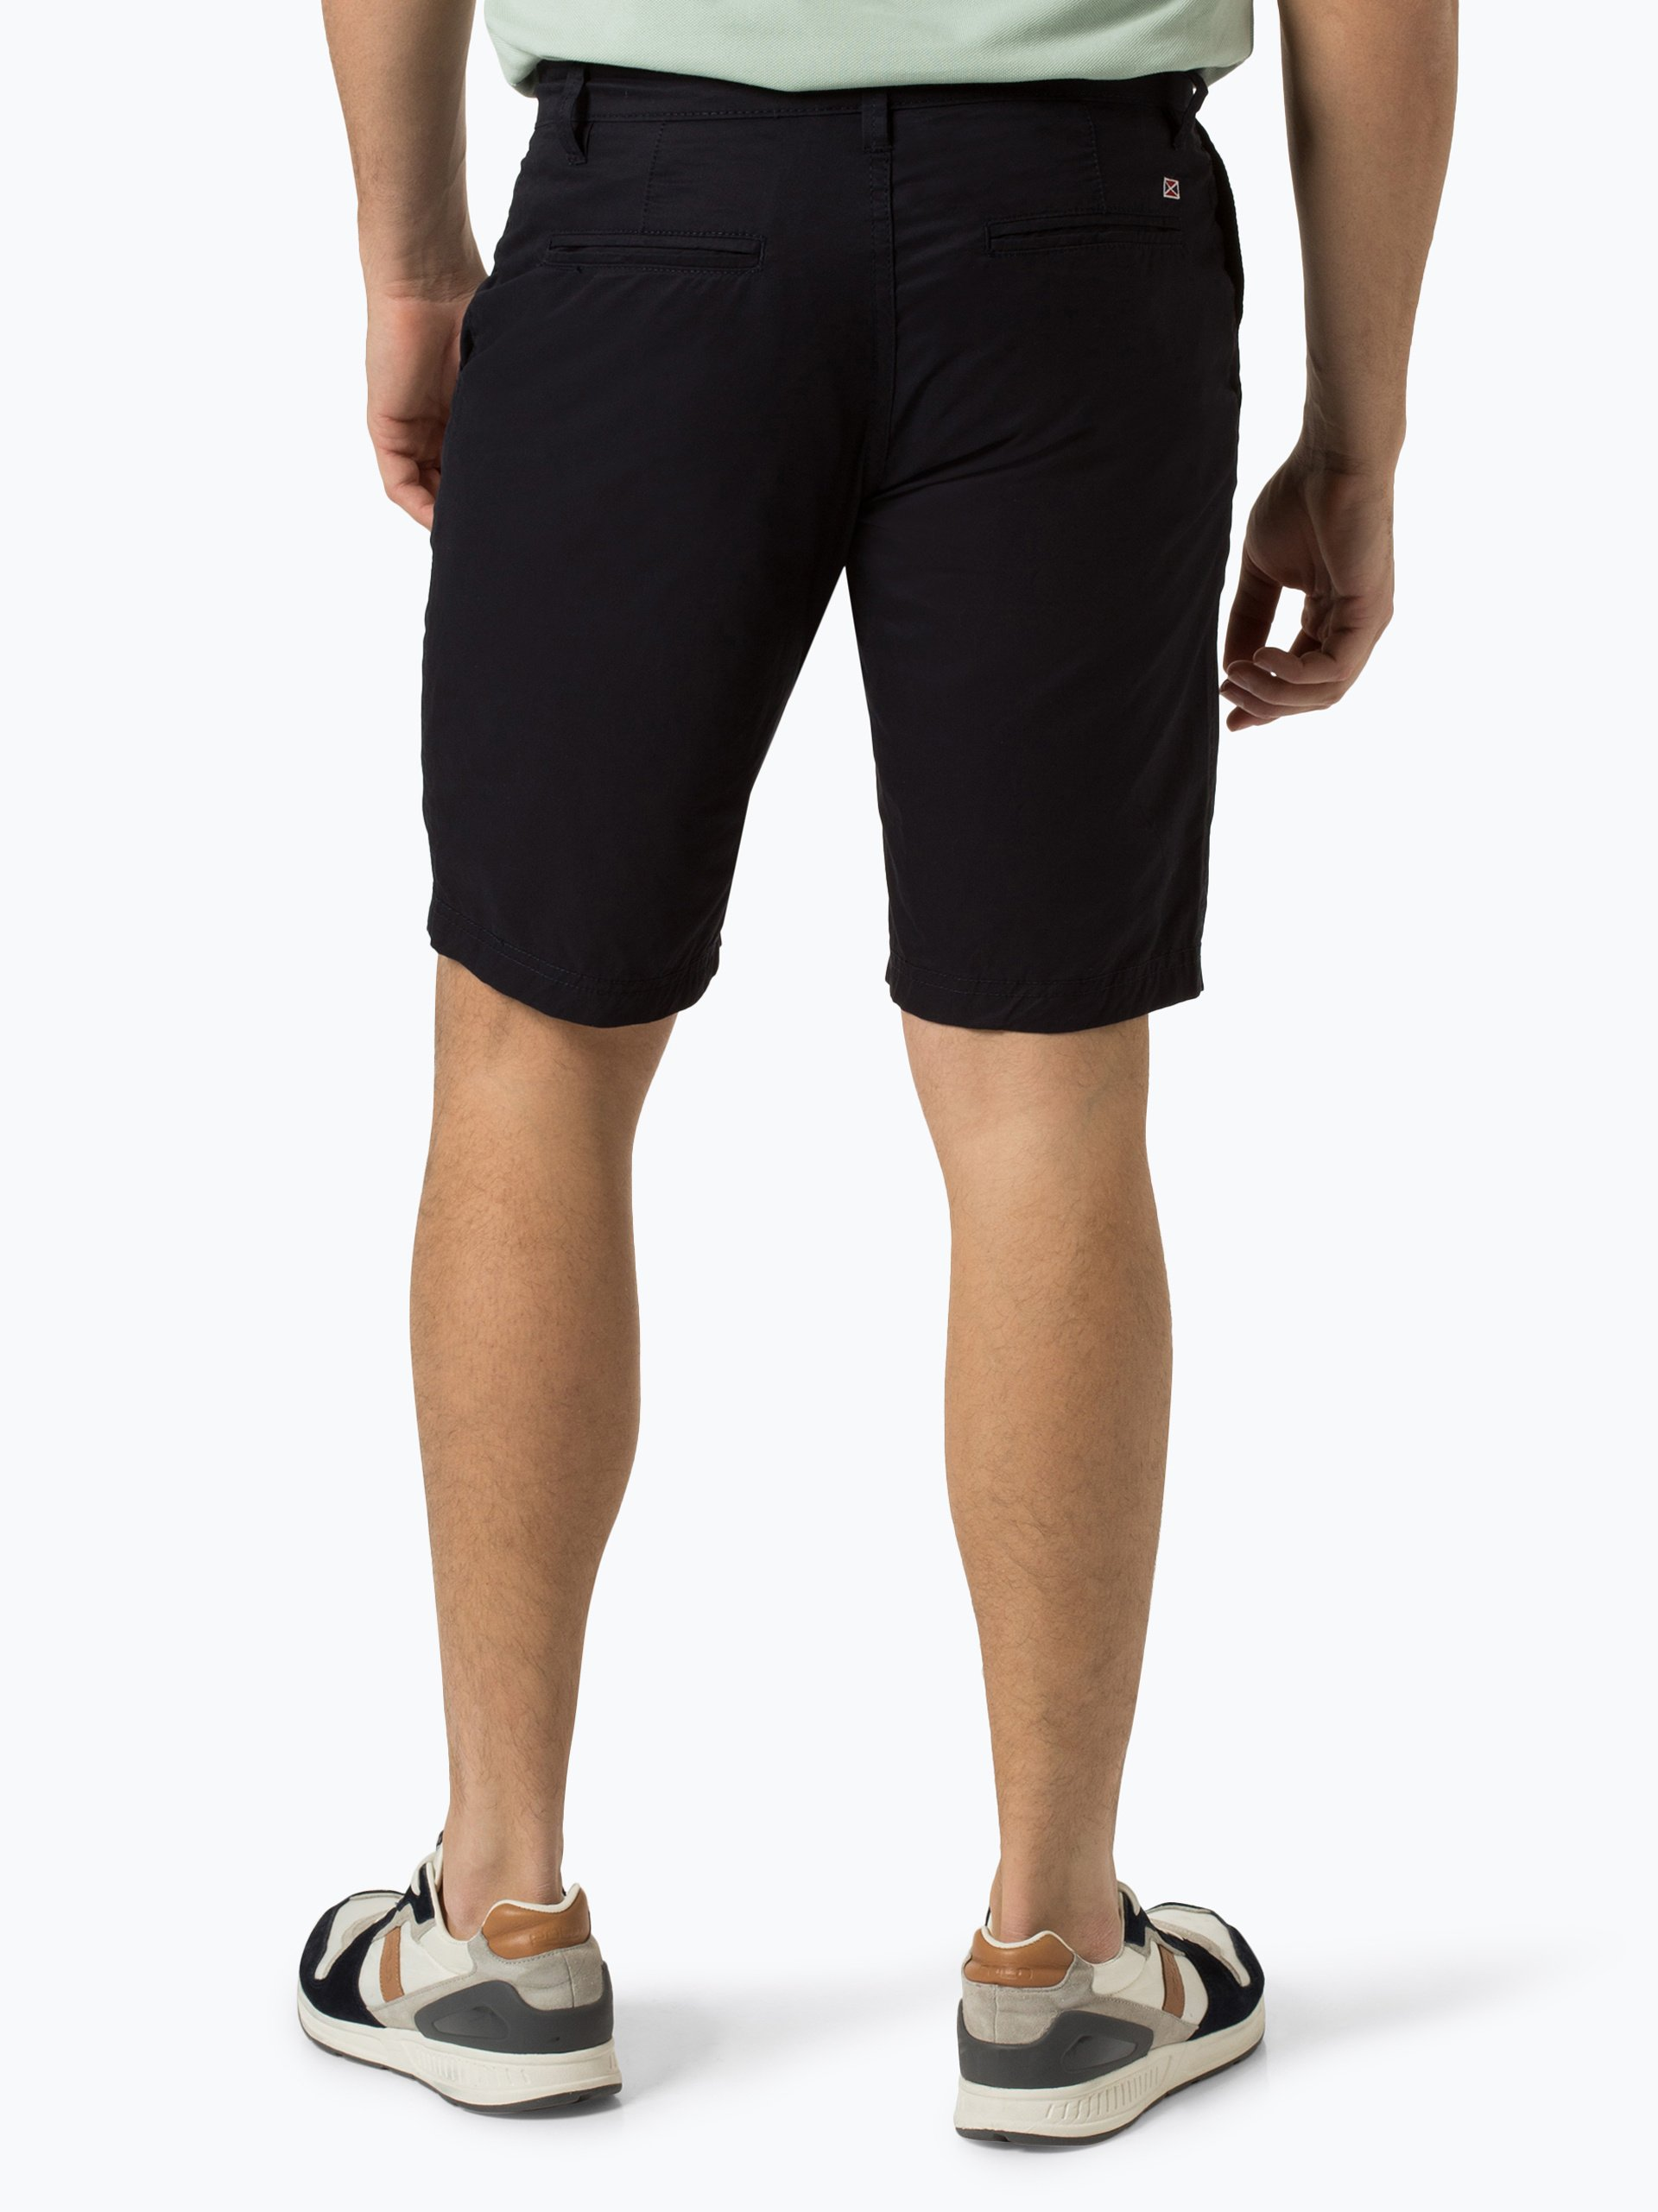 Andrew James Sailing Herren Shorts - Texas